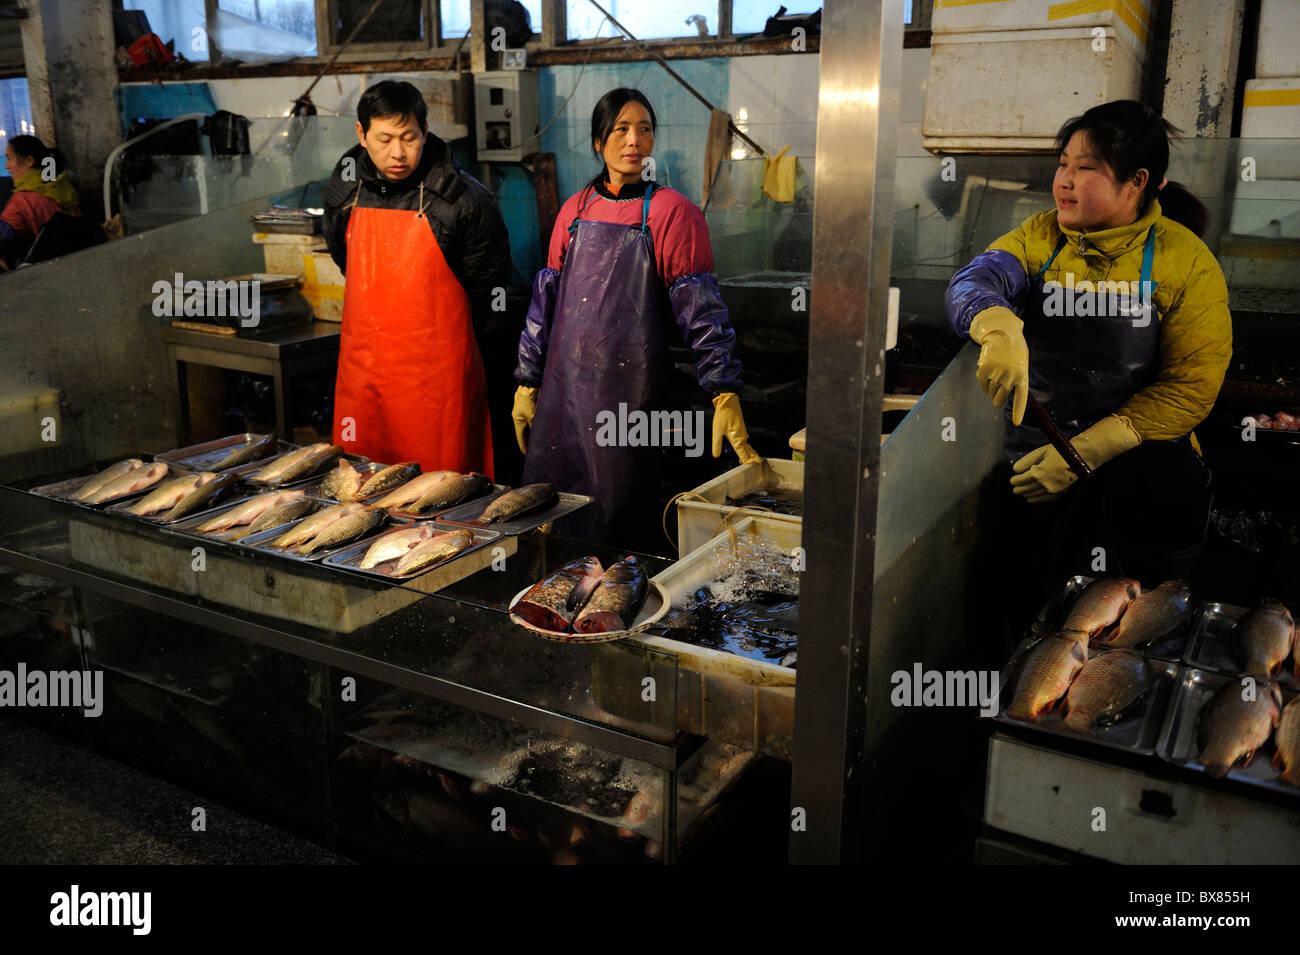 Vendors sell live river fishes at a market in Beijing, China. 10-Dec-2010 - Stock Image